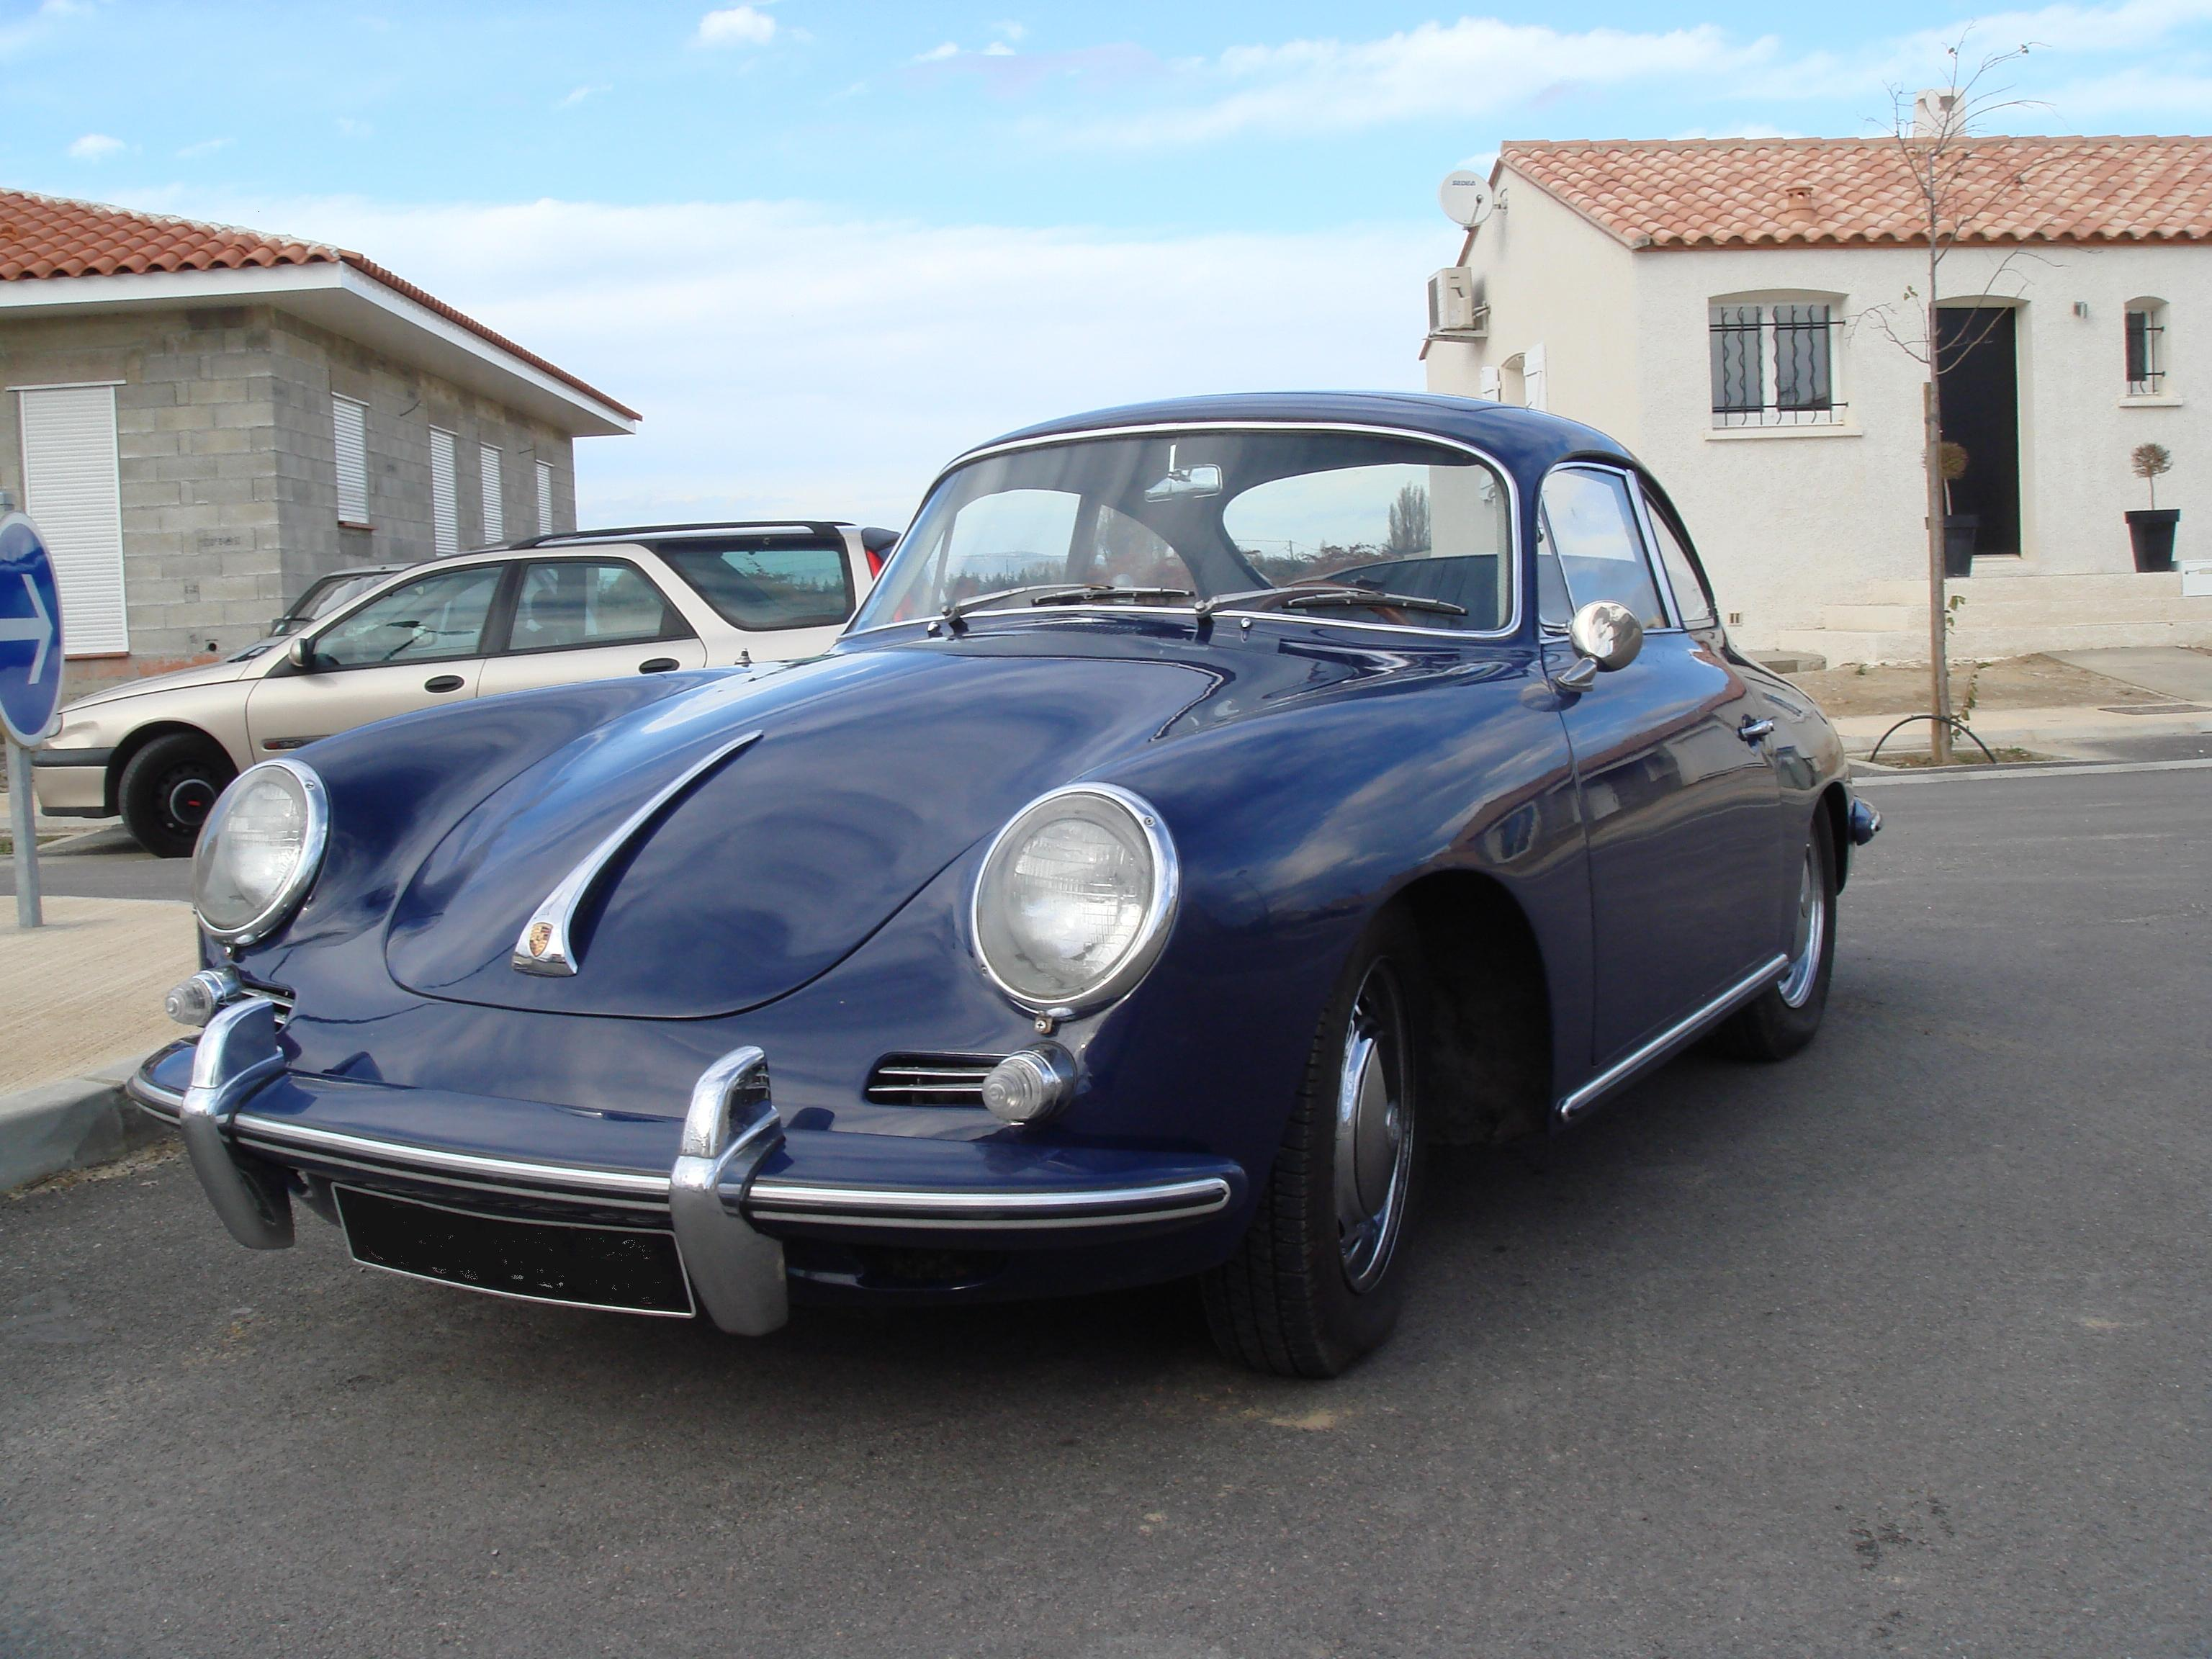 une porsche 356 c coup avec toit ouvrant electrique passion 356. Black Bedroom Furniture Sets. Home Design Ideas